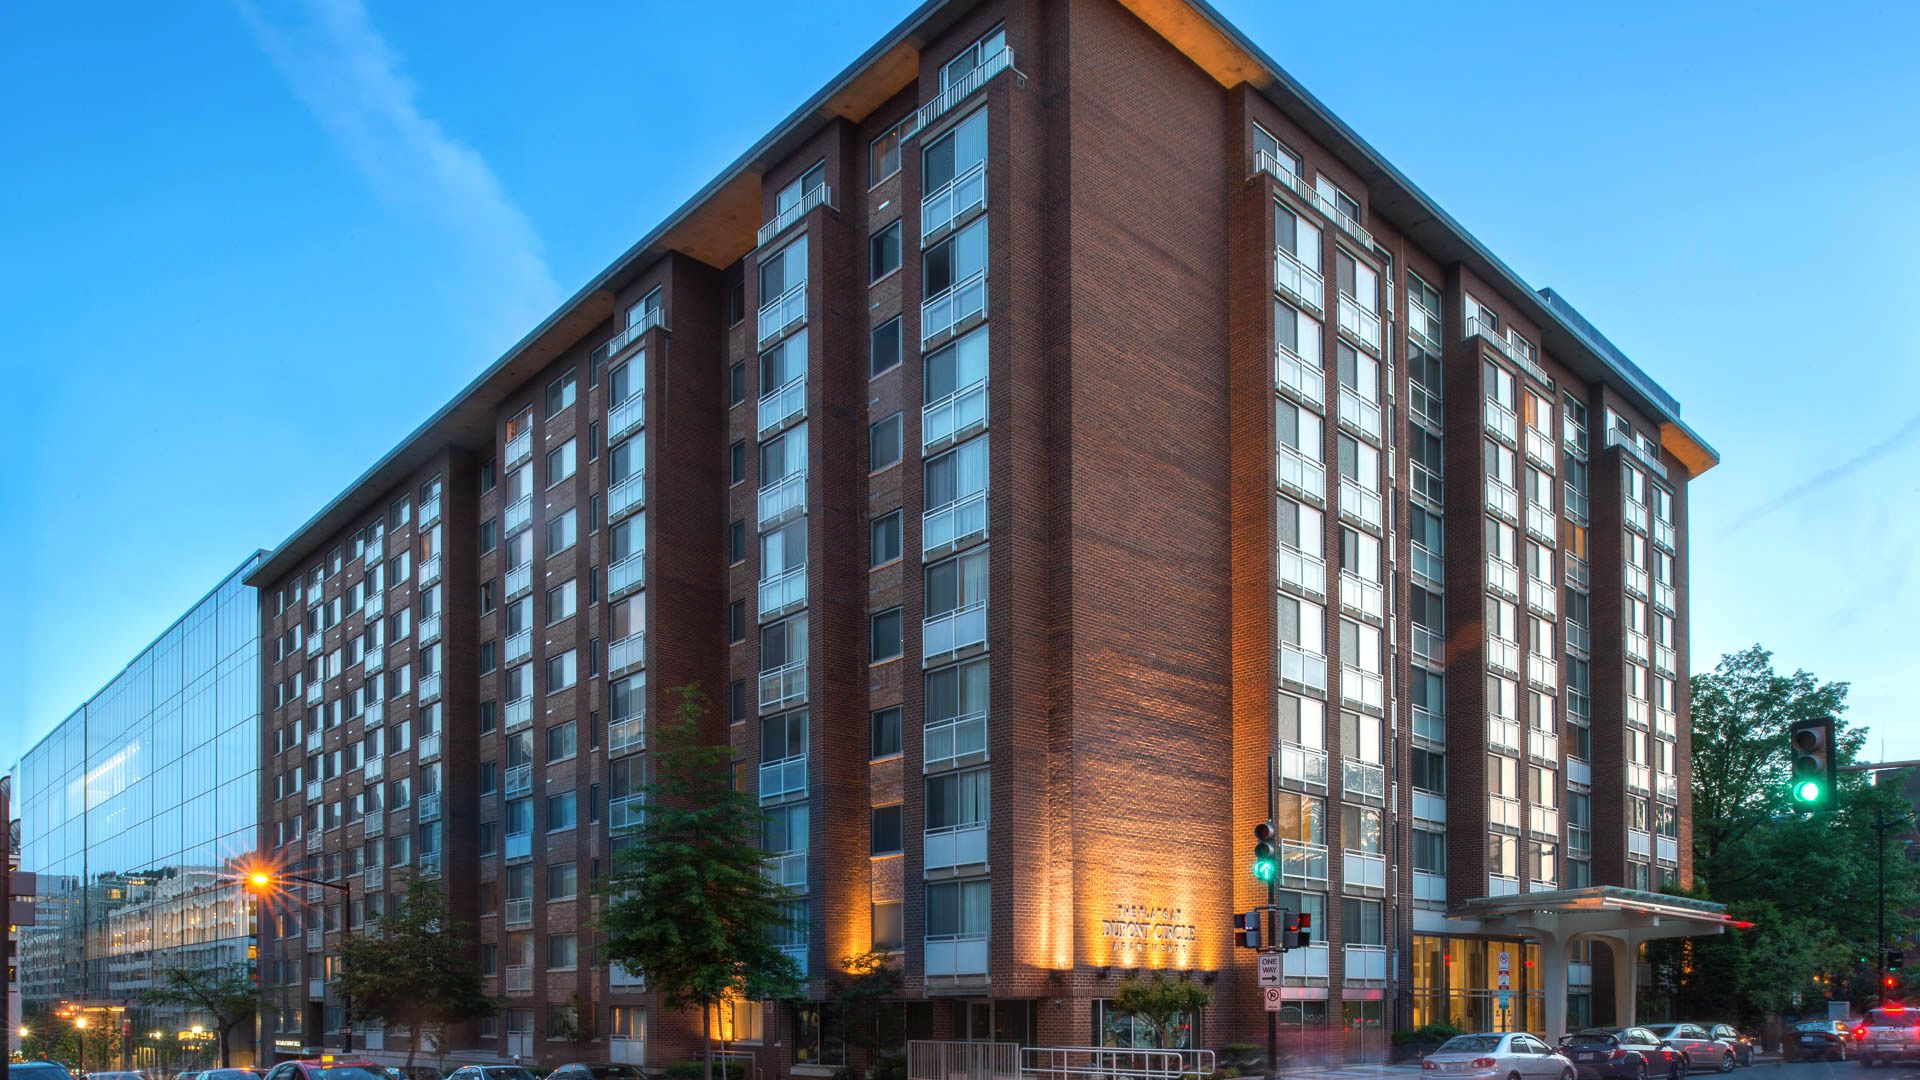 The Flats at Dupont Circle Apartments - Exterior